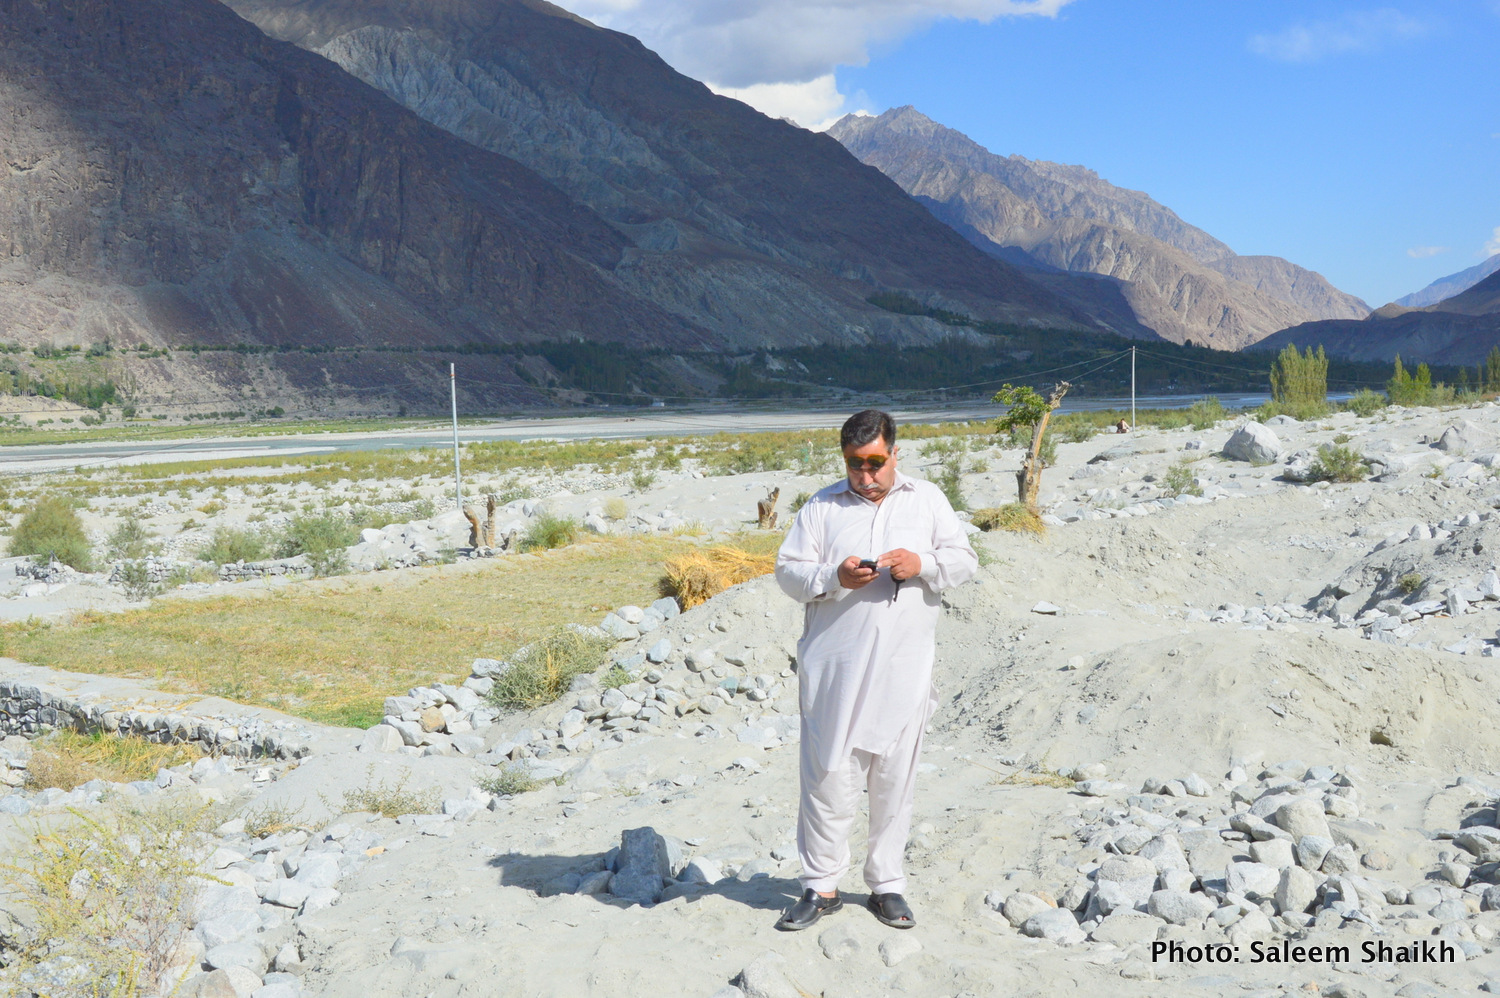 A farmer standing over what were once-fertile maize, potato and what fields now under the mud and heavy boulders washed down by the devastating 2010 flash flood in Damaas valley of Gilgit-Baltistan region's scenic Ghizer district, Pakistan's north. Photo credit: Saleem Shaikh